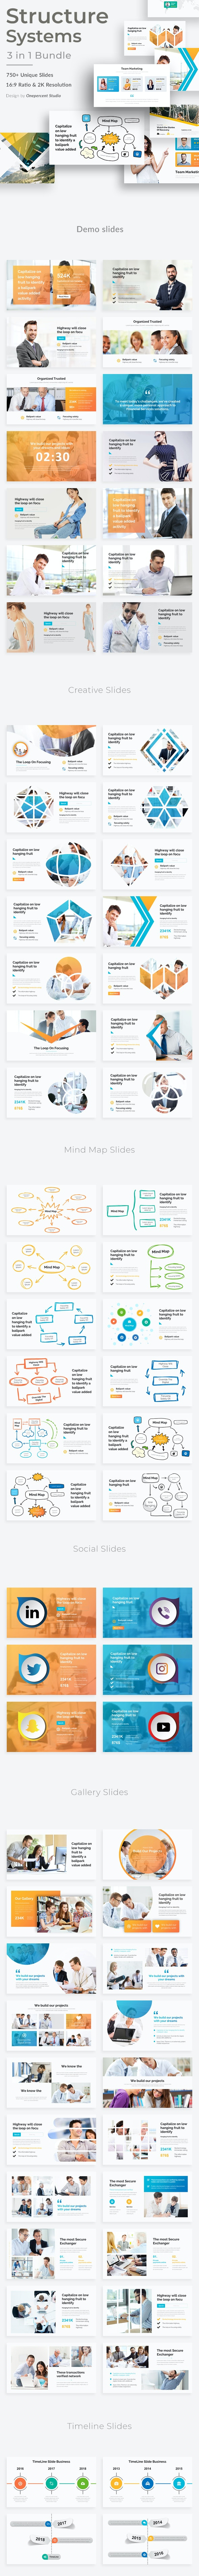 Structure System 3 in 1 Pitch Deck Bundle Powerpoint Template - Business PowerPoint Templates